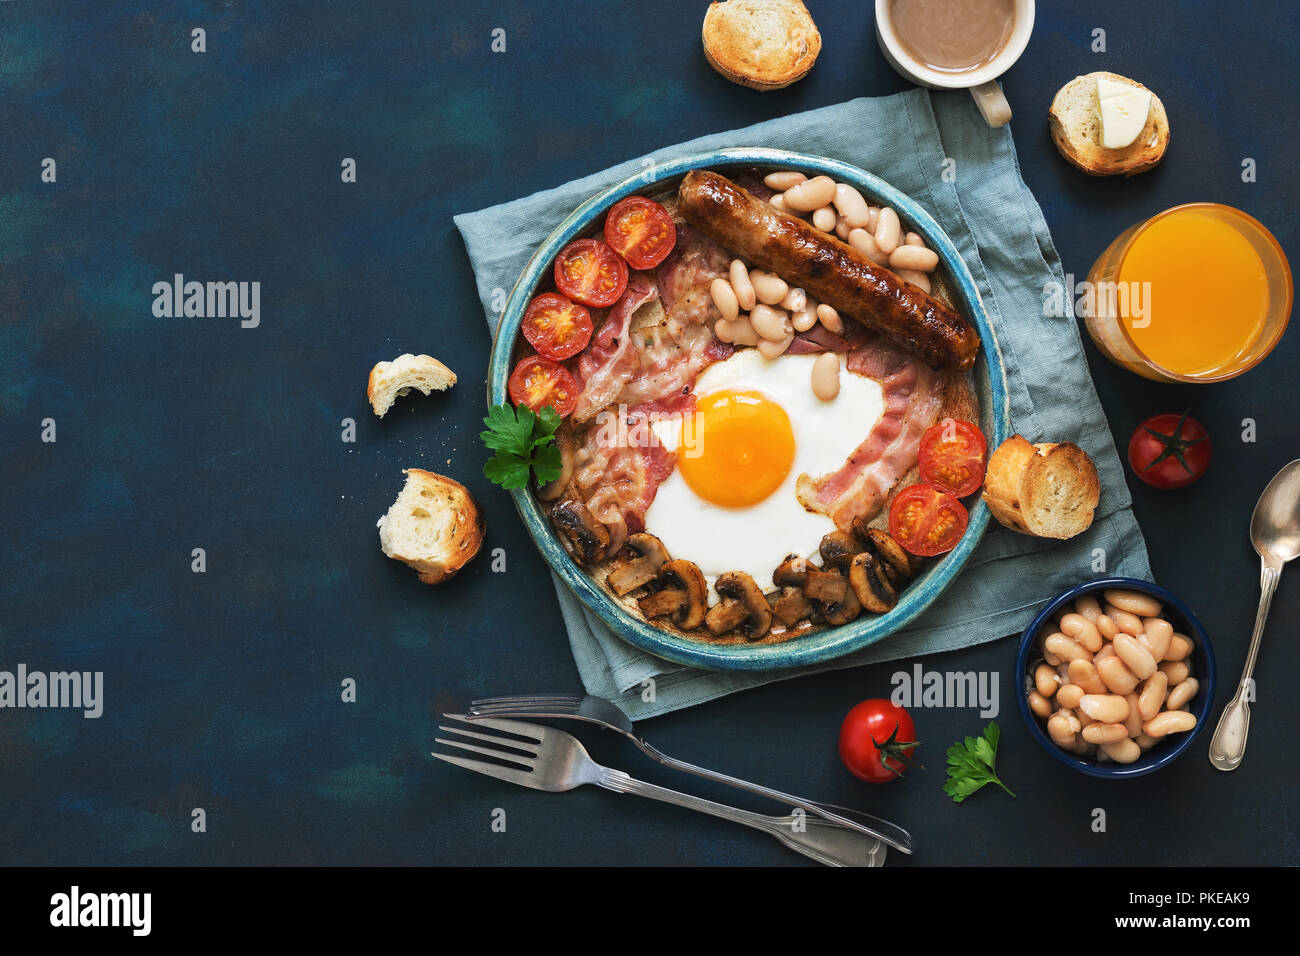 Traditional English breakfast on a blue background. Fried egg with sausage, mushrooms, beans, tomatoes and bacon. Top view, copy space - Stock Image